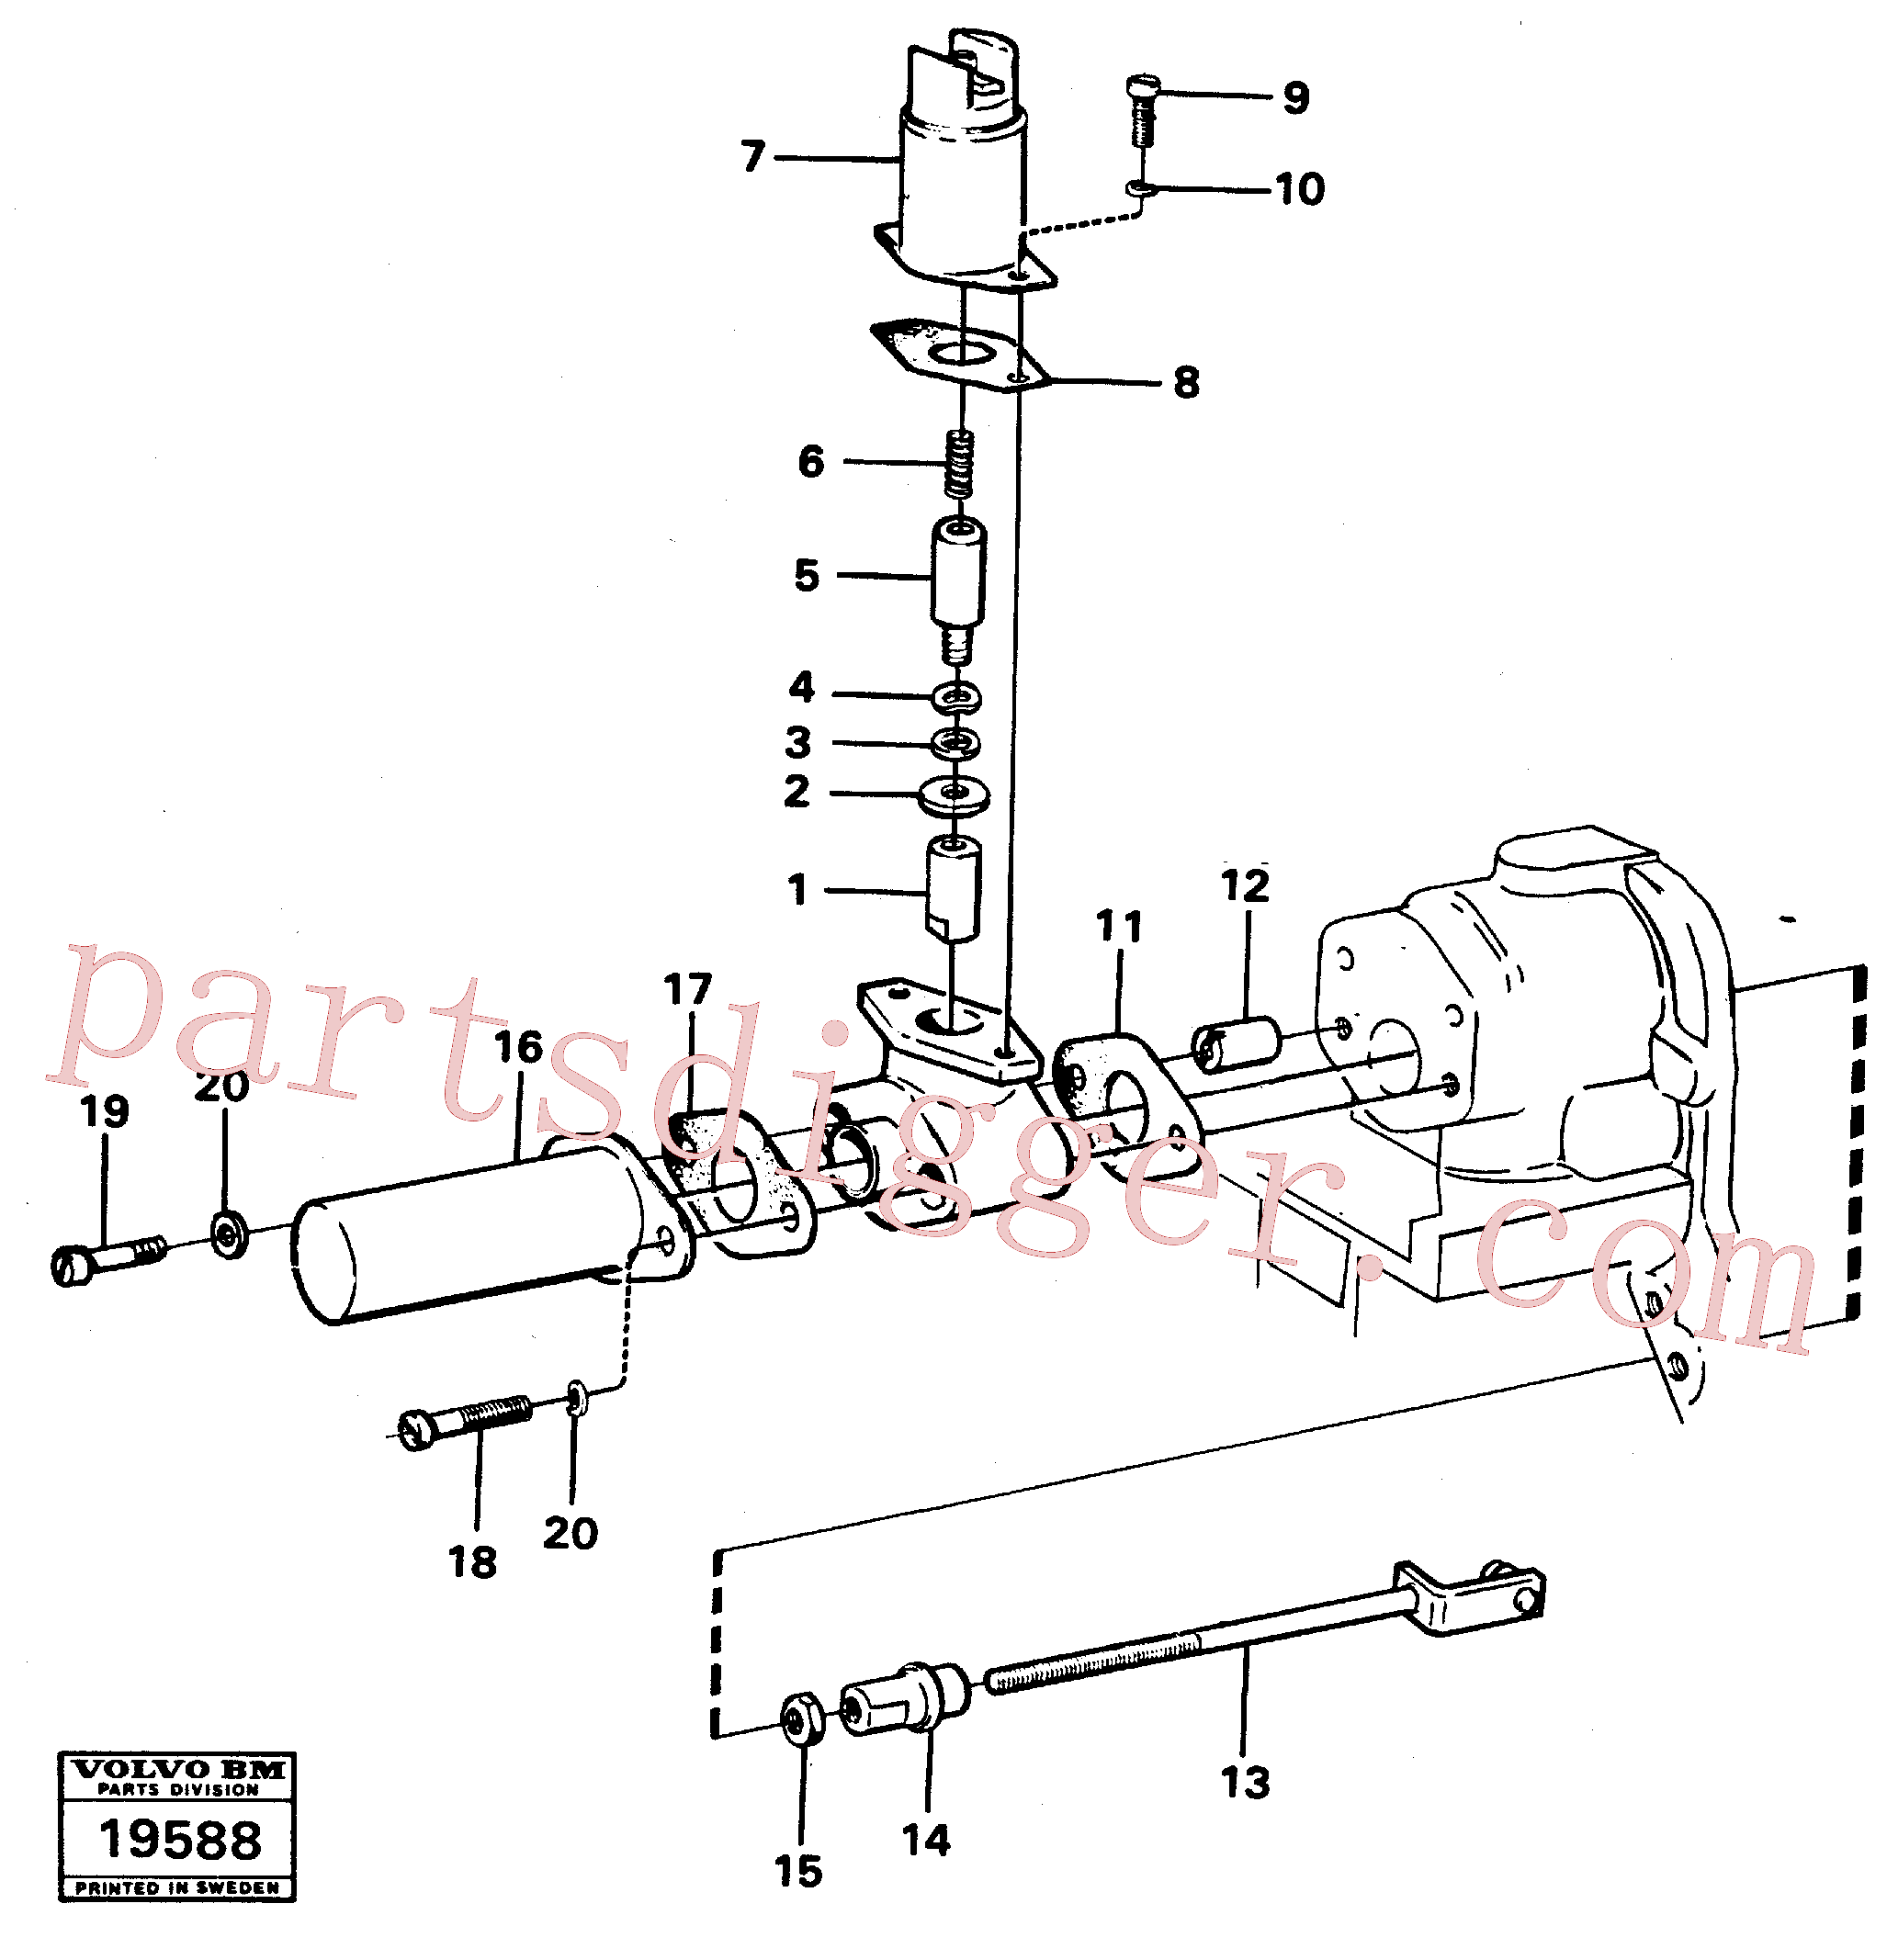 VOE941905 for Volvo Cold-starting device(19588 assembly)